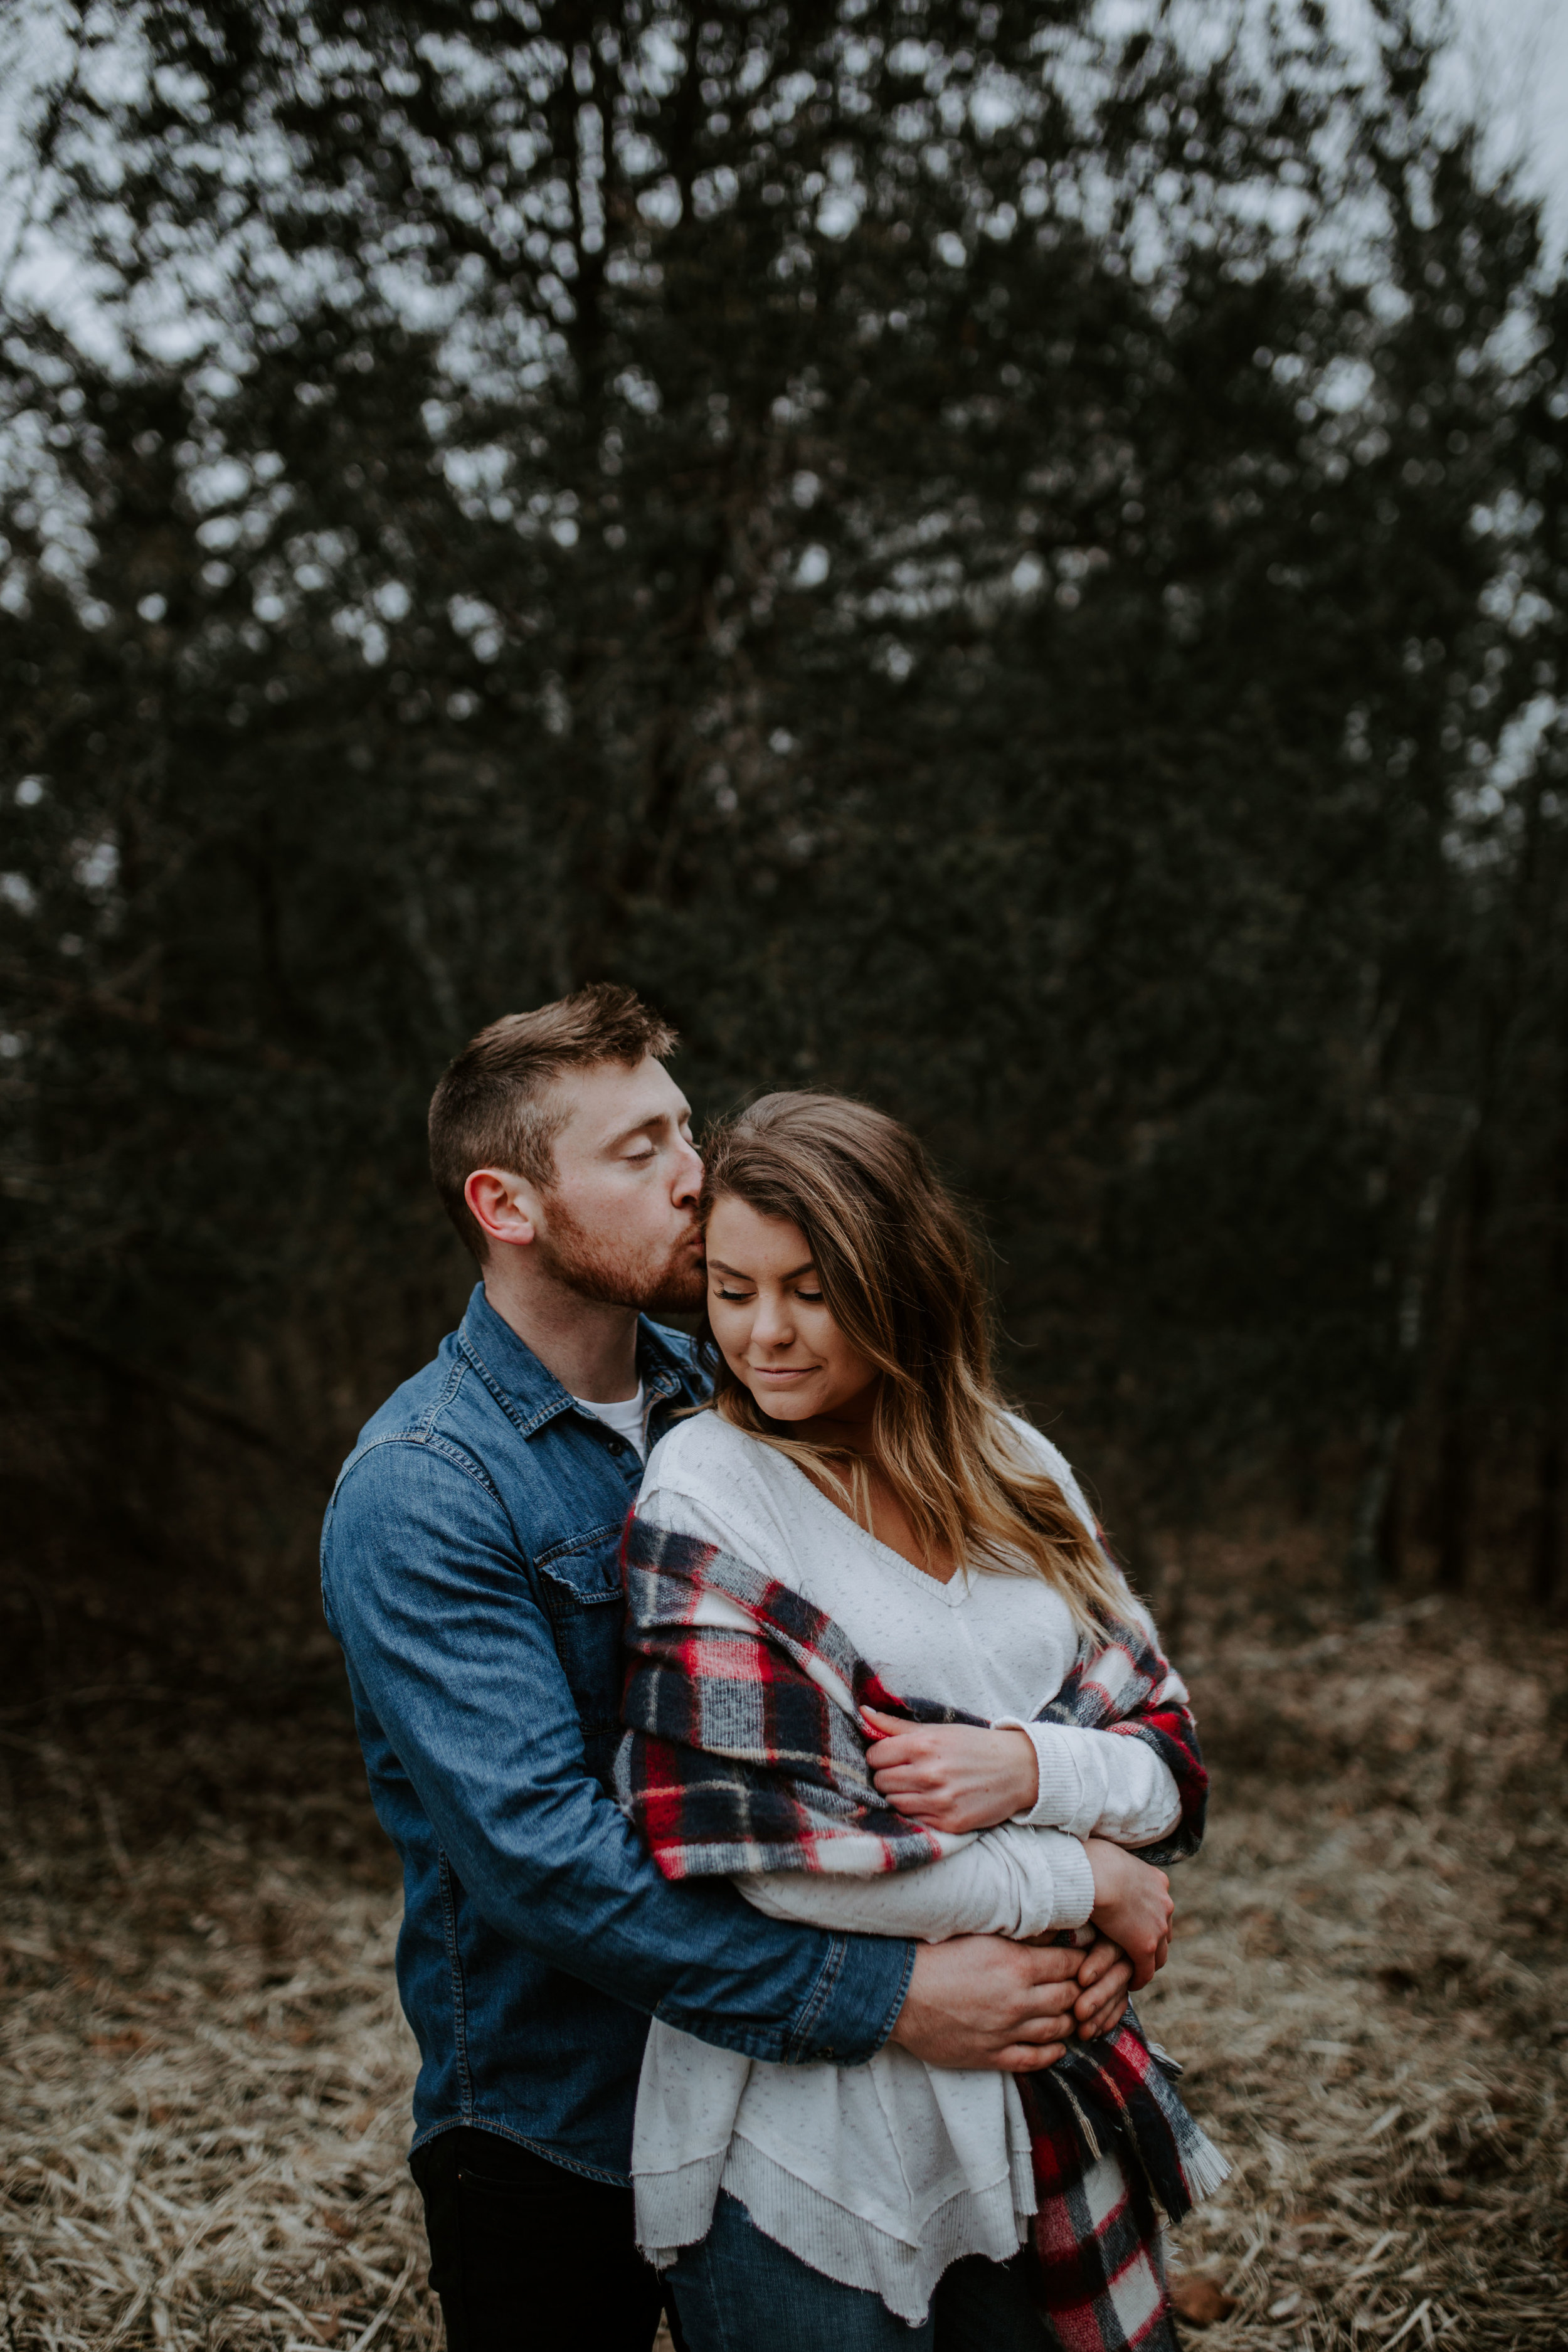 LIZA+EVAN-BLOOMINGTON-COUPLE-ENGAGEMENT-REAGANLYNNPHOTOGRAPHY-MUNCIE-INDIANAPOLIS-14.jpg